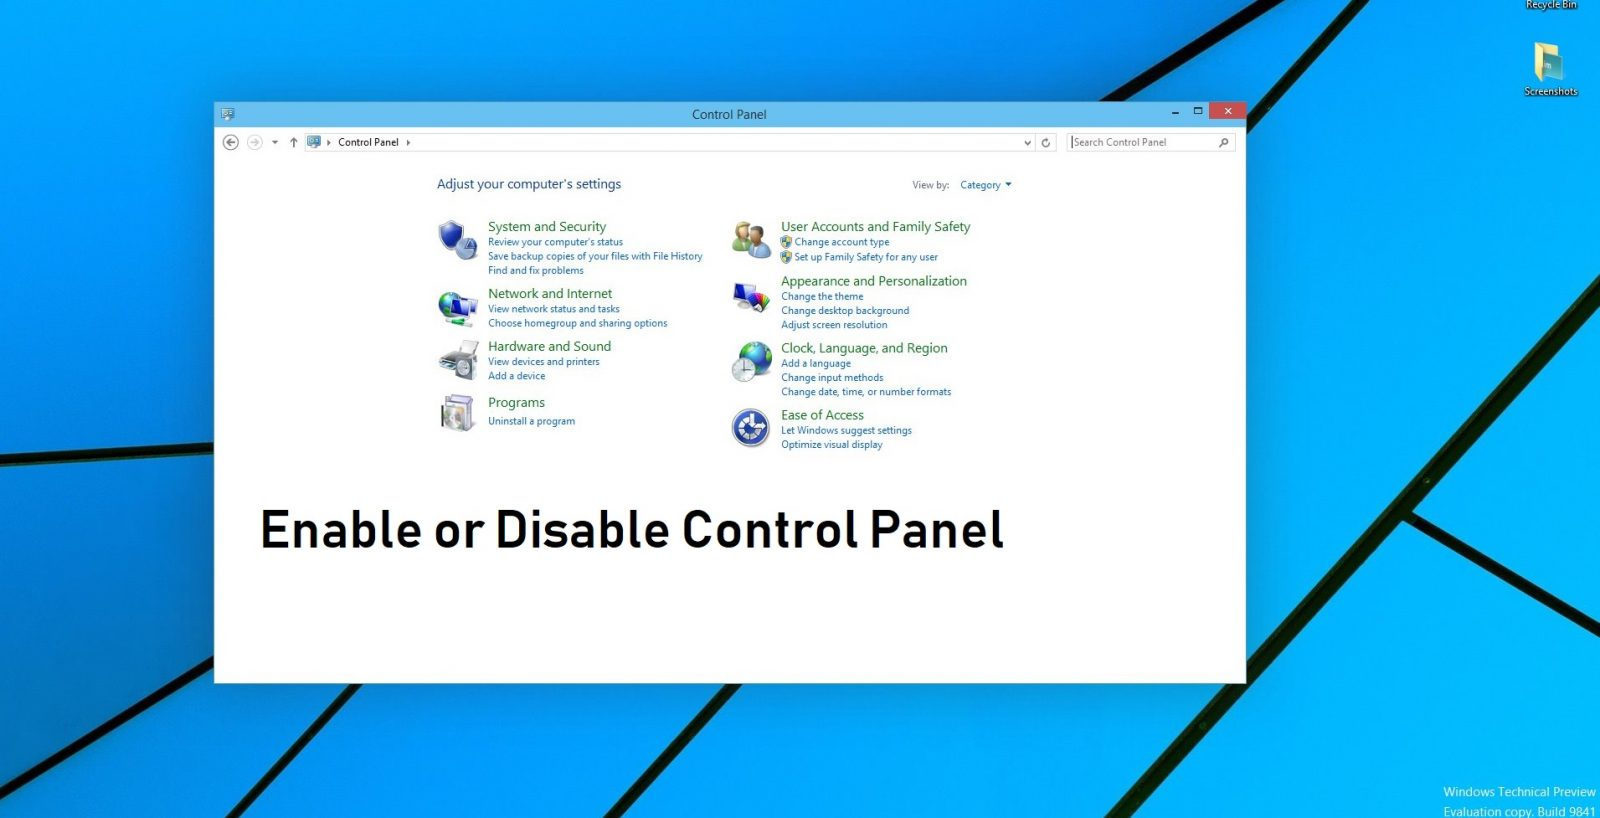 disabel enable control panel